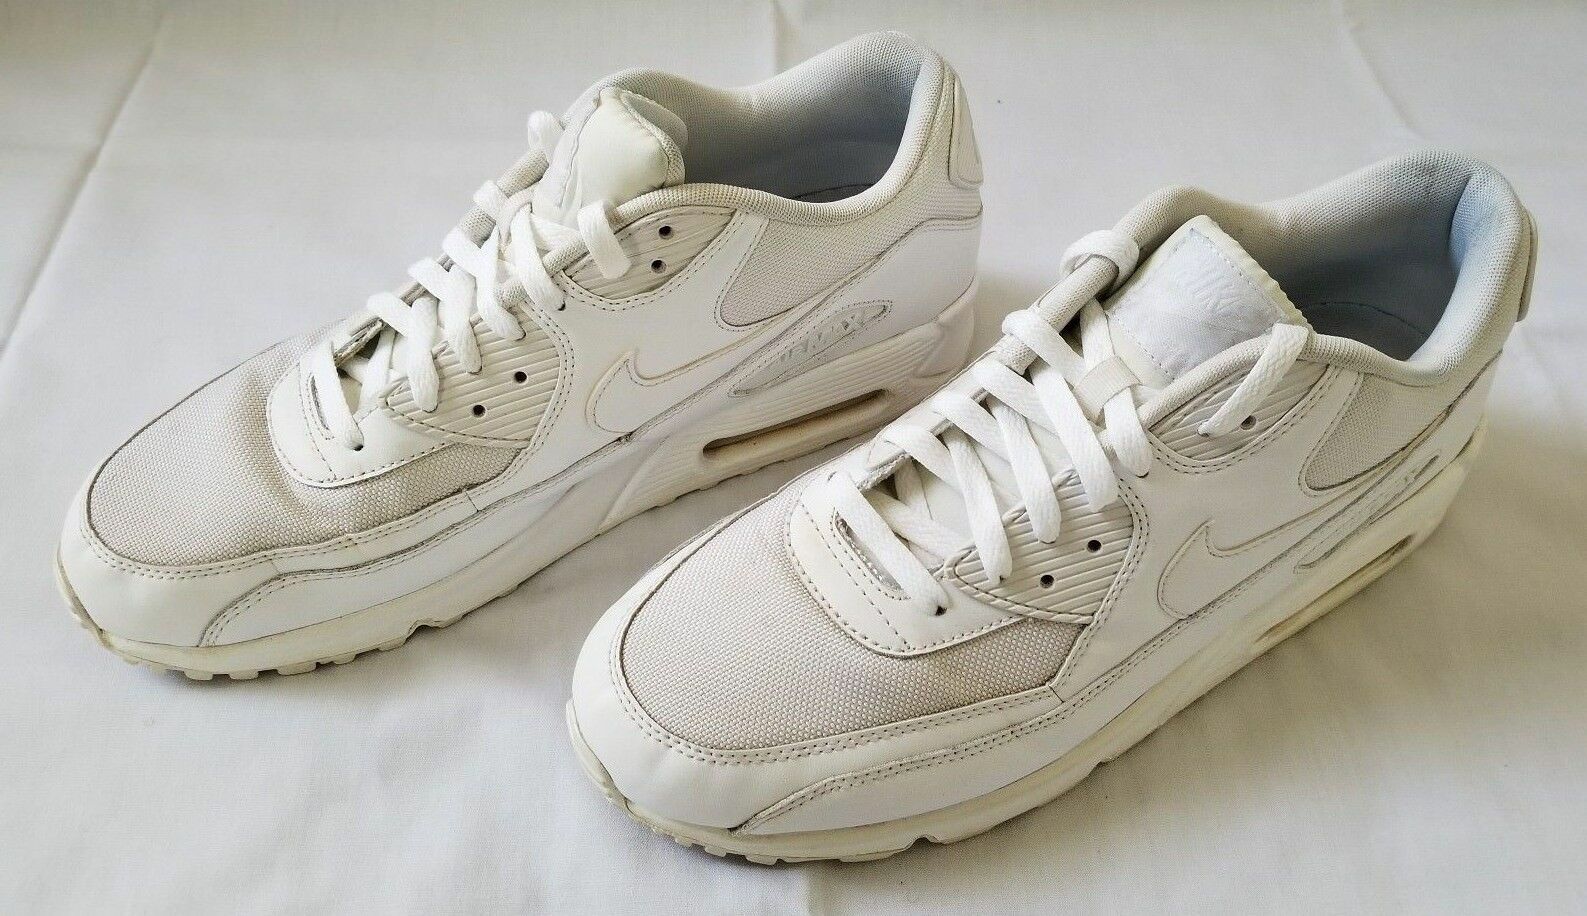 Mens Sz 12.5 White Air Max 90 Essential Running shoes 537384-111 preowned